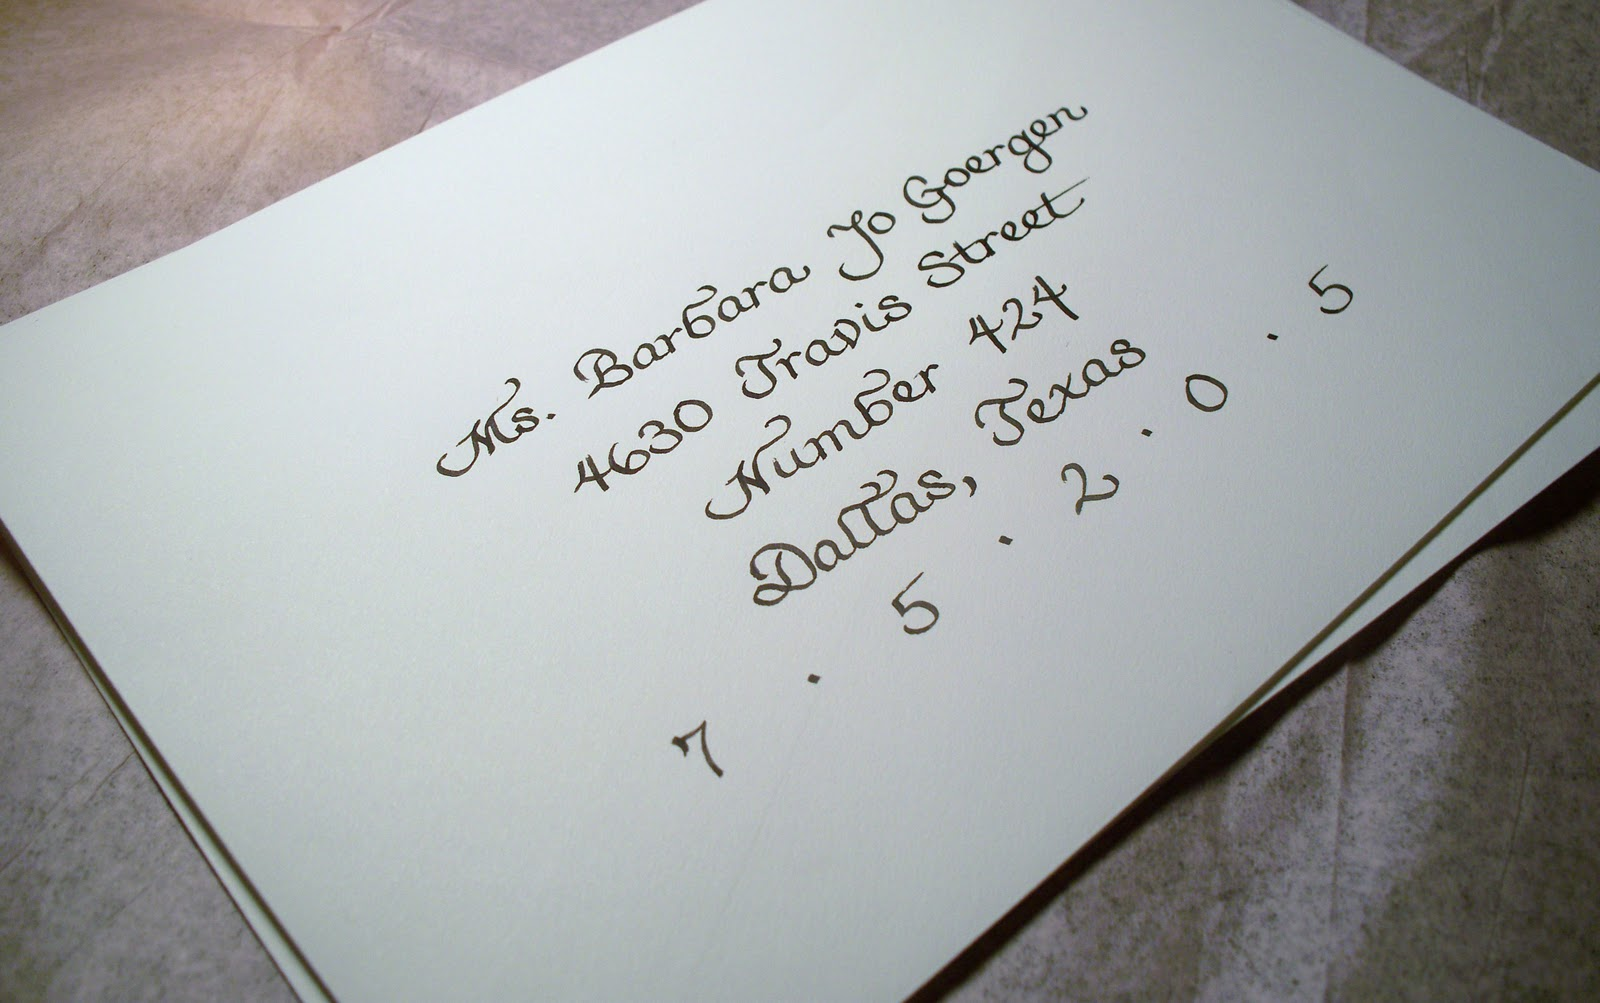 Calligraphy Wedding Invitations: From The Ash Tree Meadow...: Calligraphy For Wedding